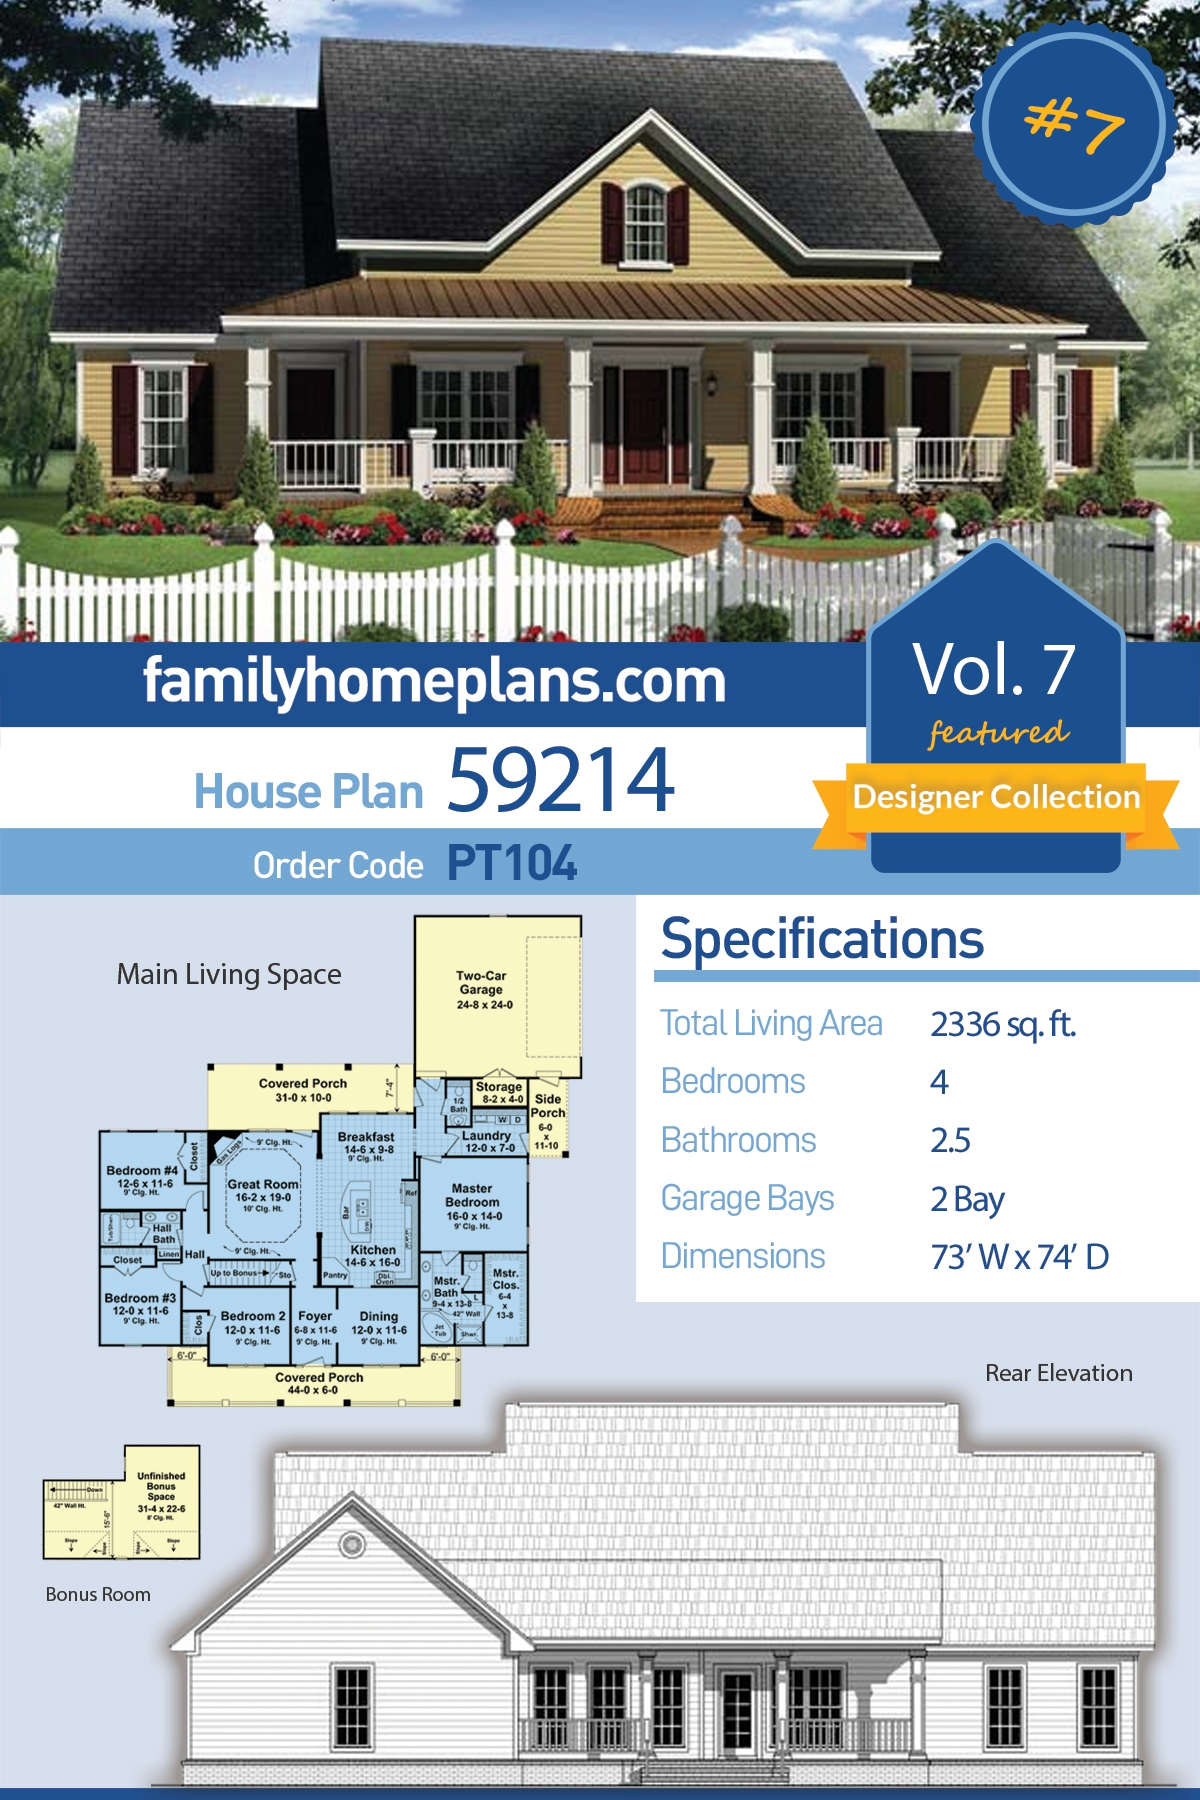 Country, Farmhouse, Traditional House Plan 59214 with 4 Beds, 3 Baths, 2 Car Garage